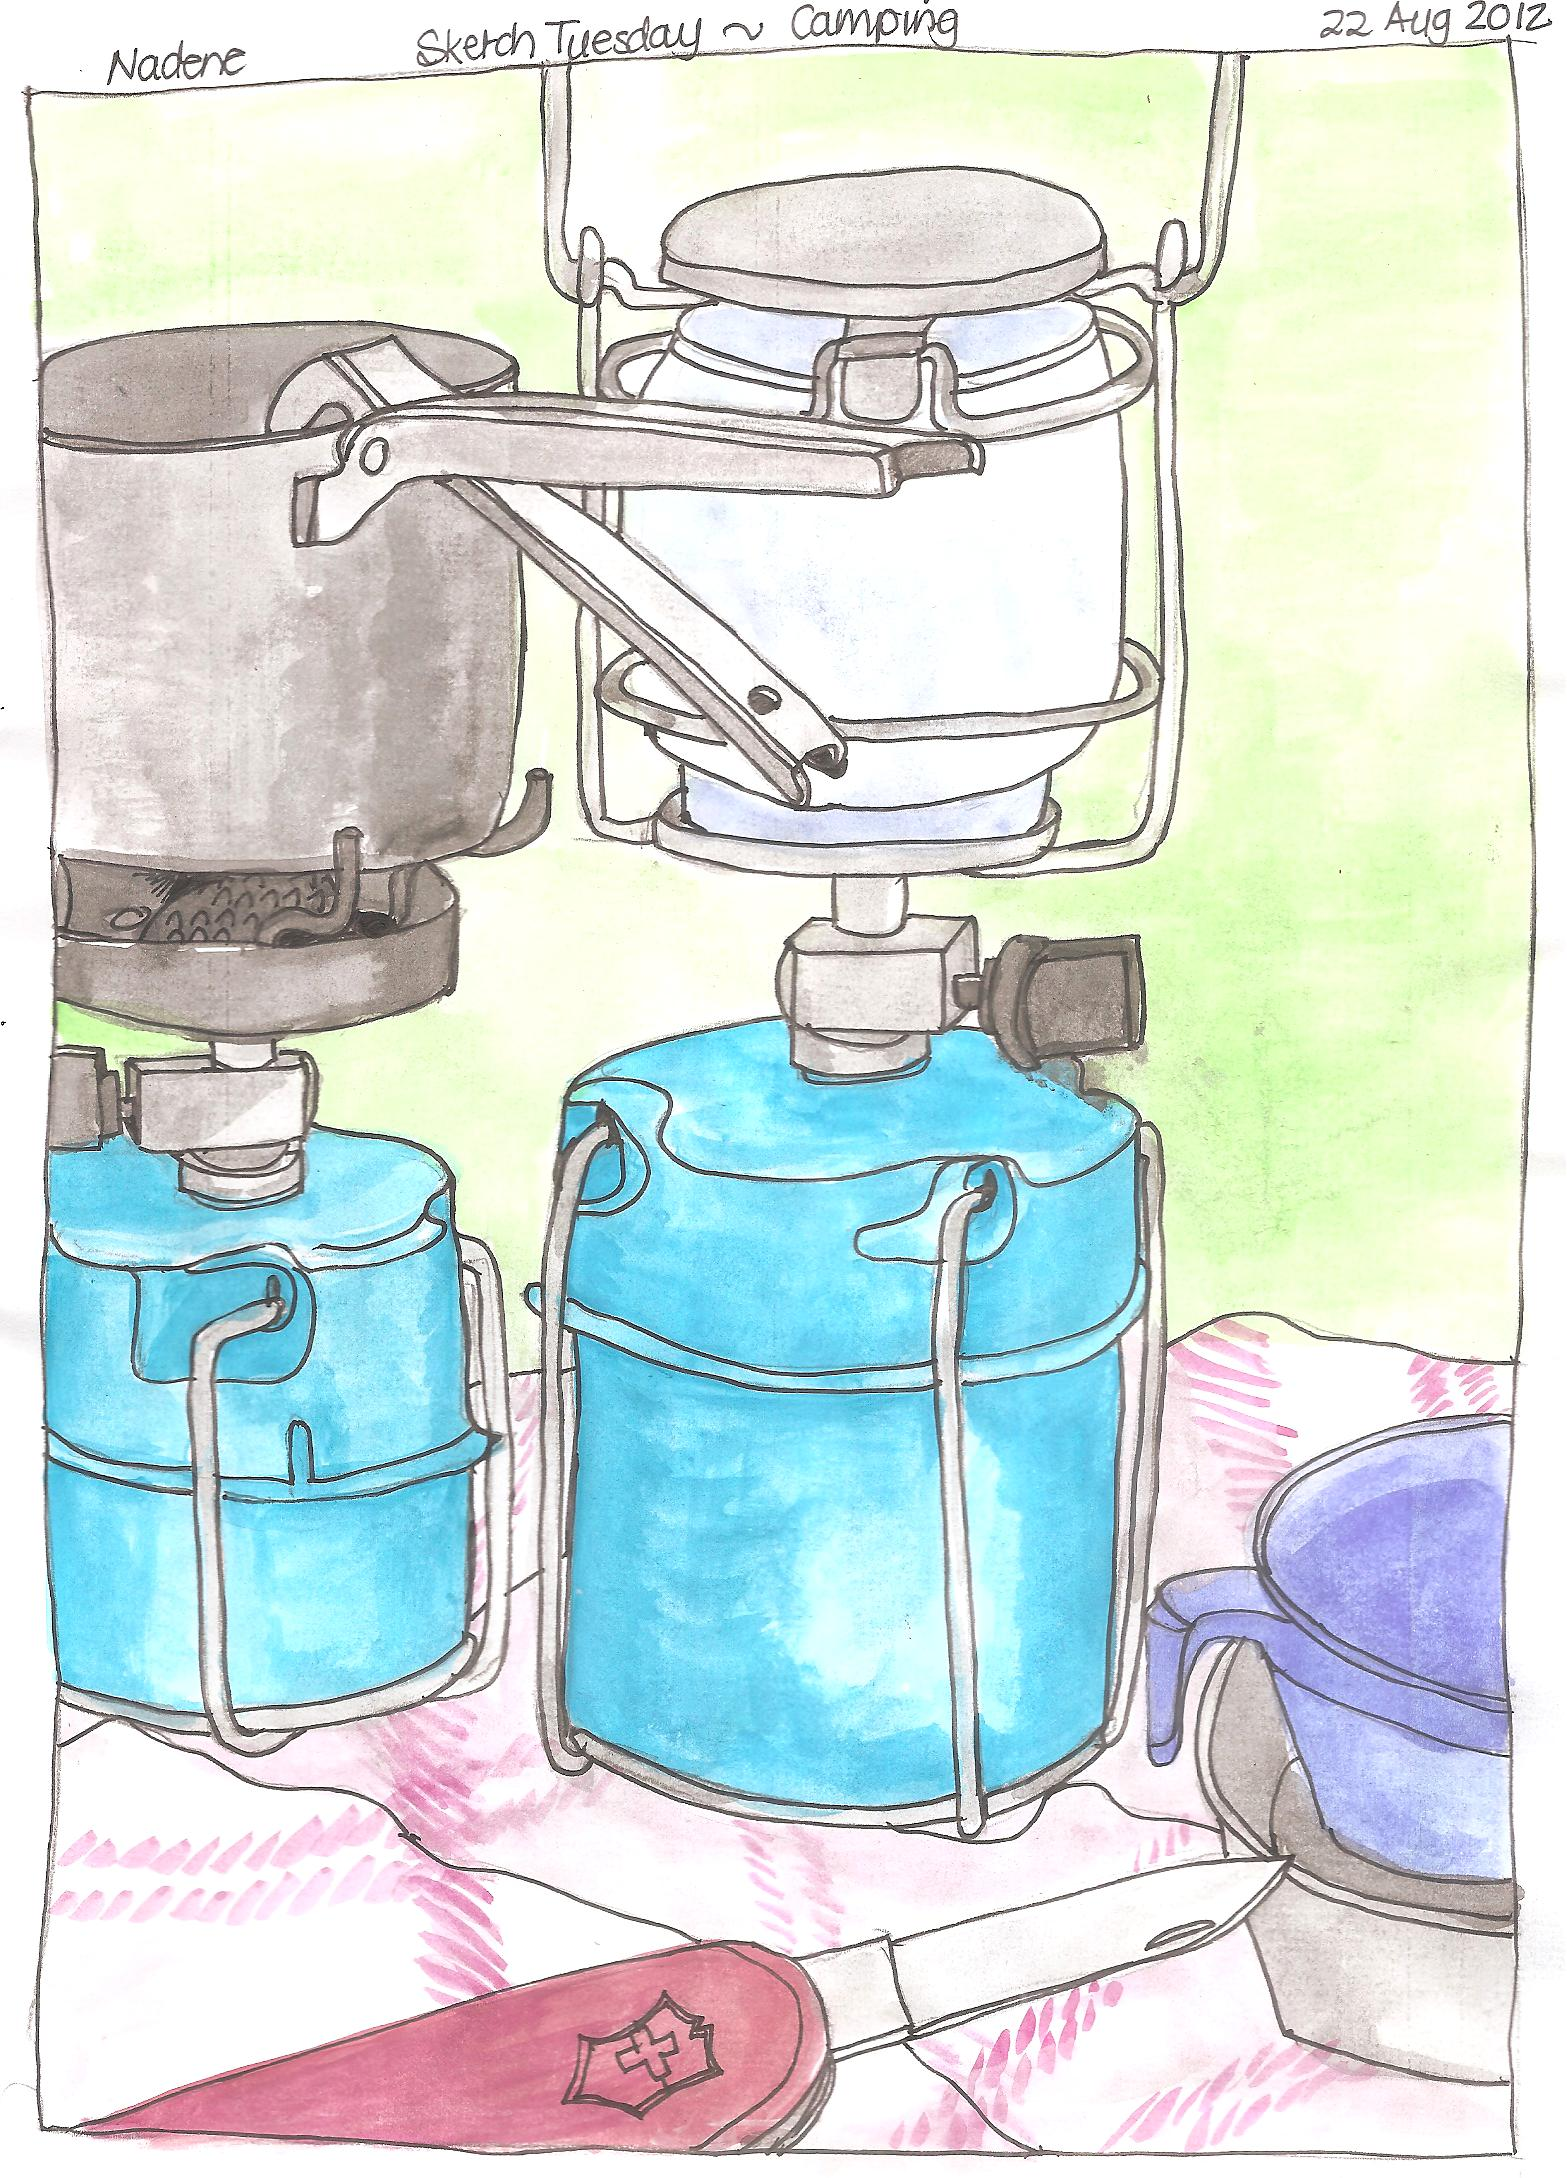 Sketch Tuesday ~ Picnic & Camping | Practical Pages